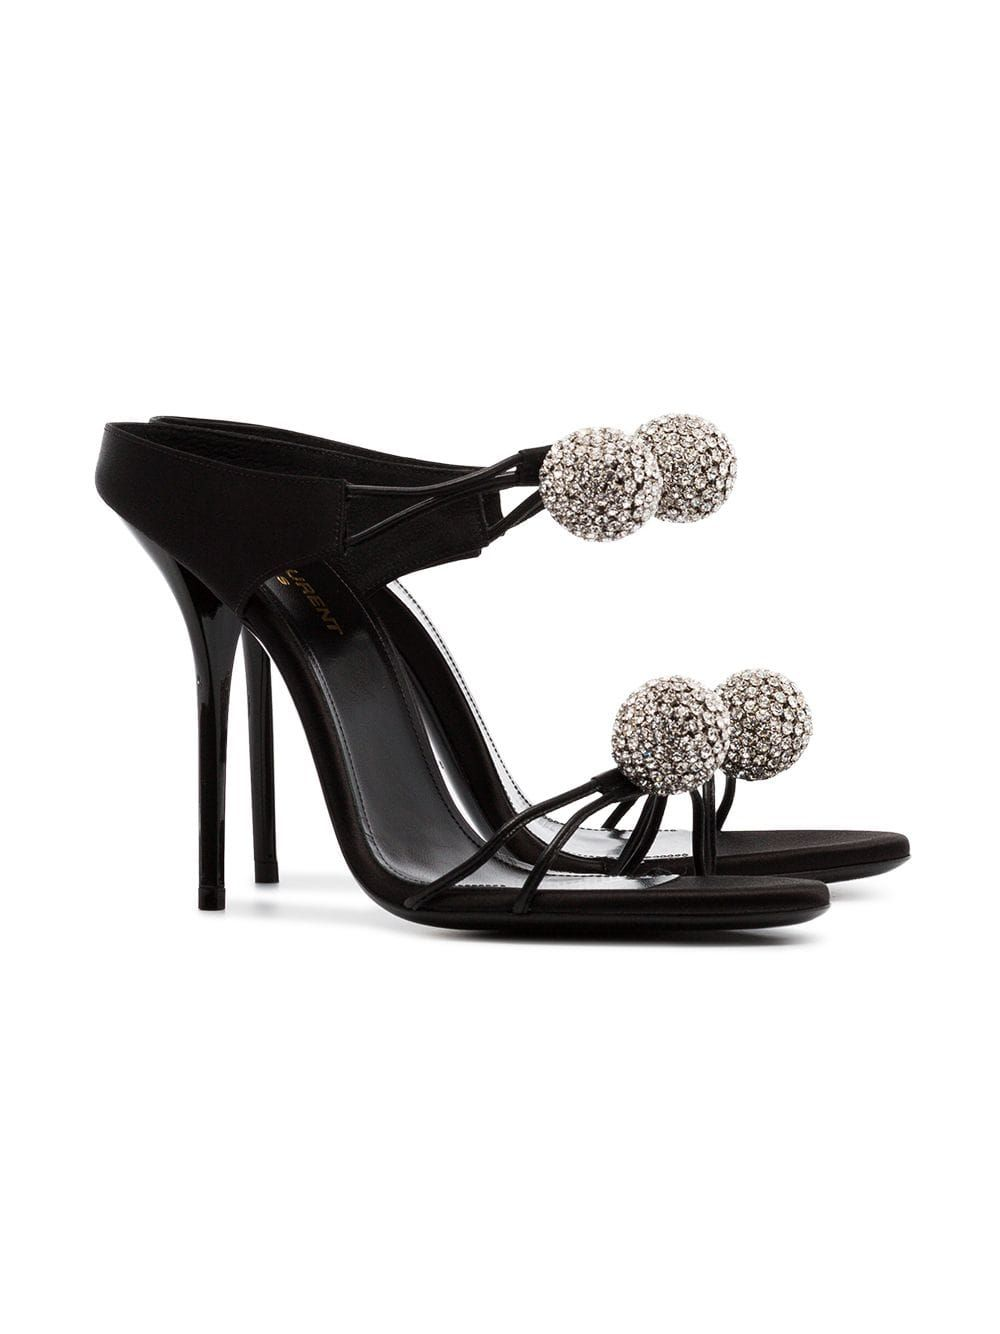 d33a3302e5a3 Saint Laurent Pierre 110 Satin And Leather Crystal Ball Shoes in ...